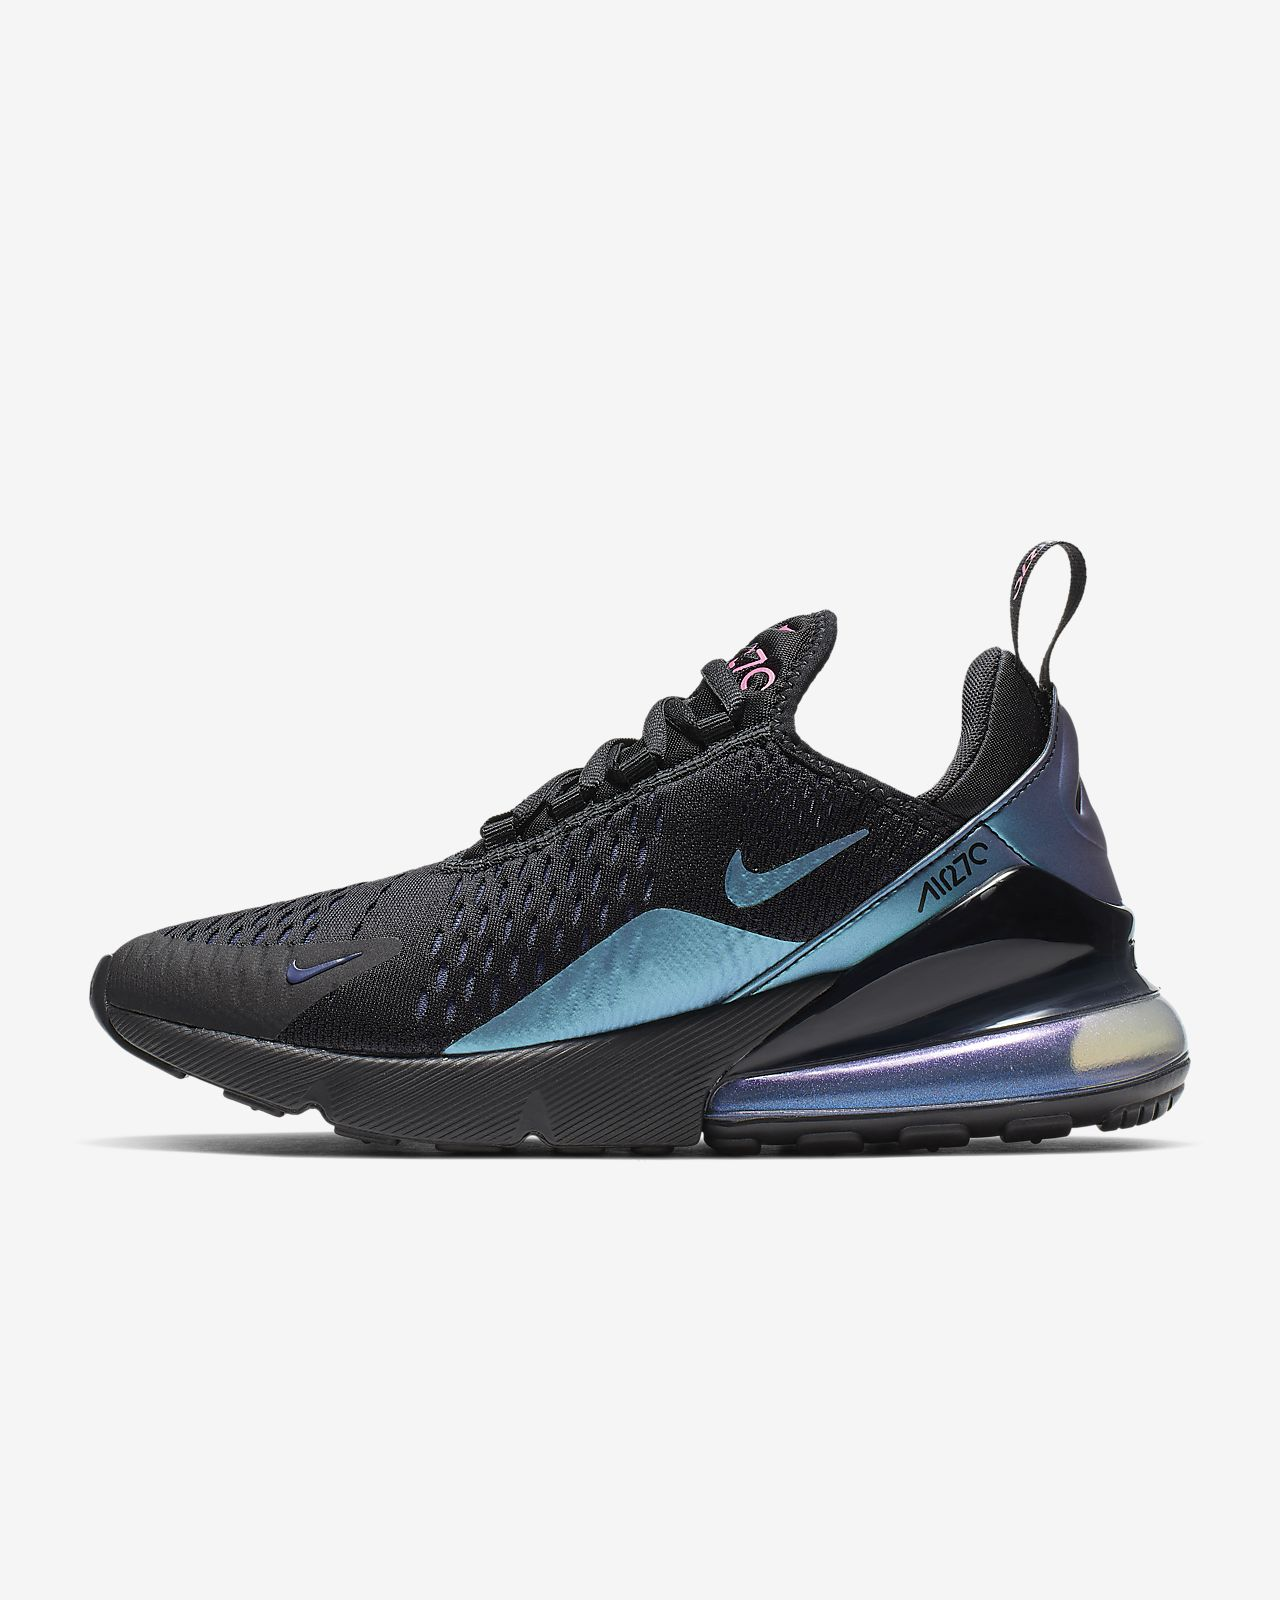 separation shoes 91cb2 3f224 ... Nike Air Max 270 Women s Shoe